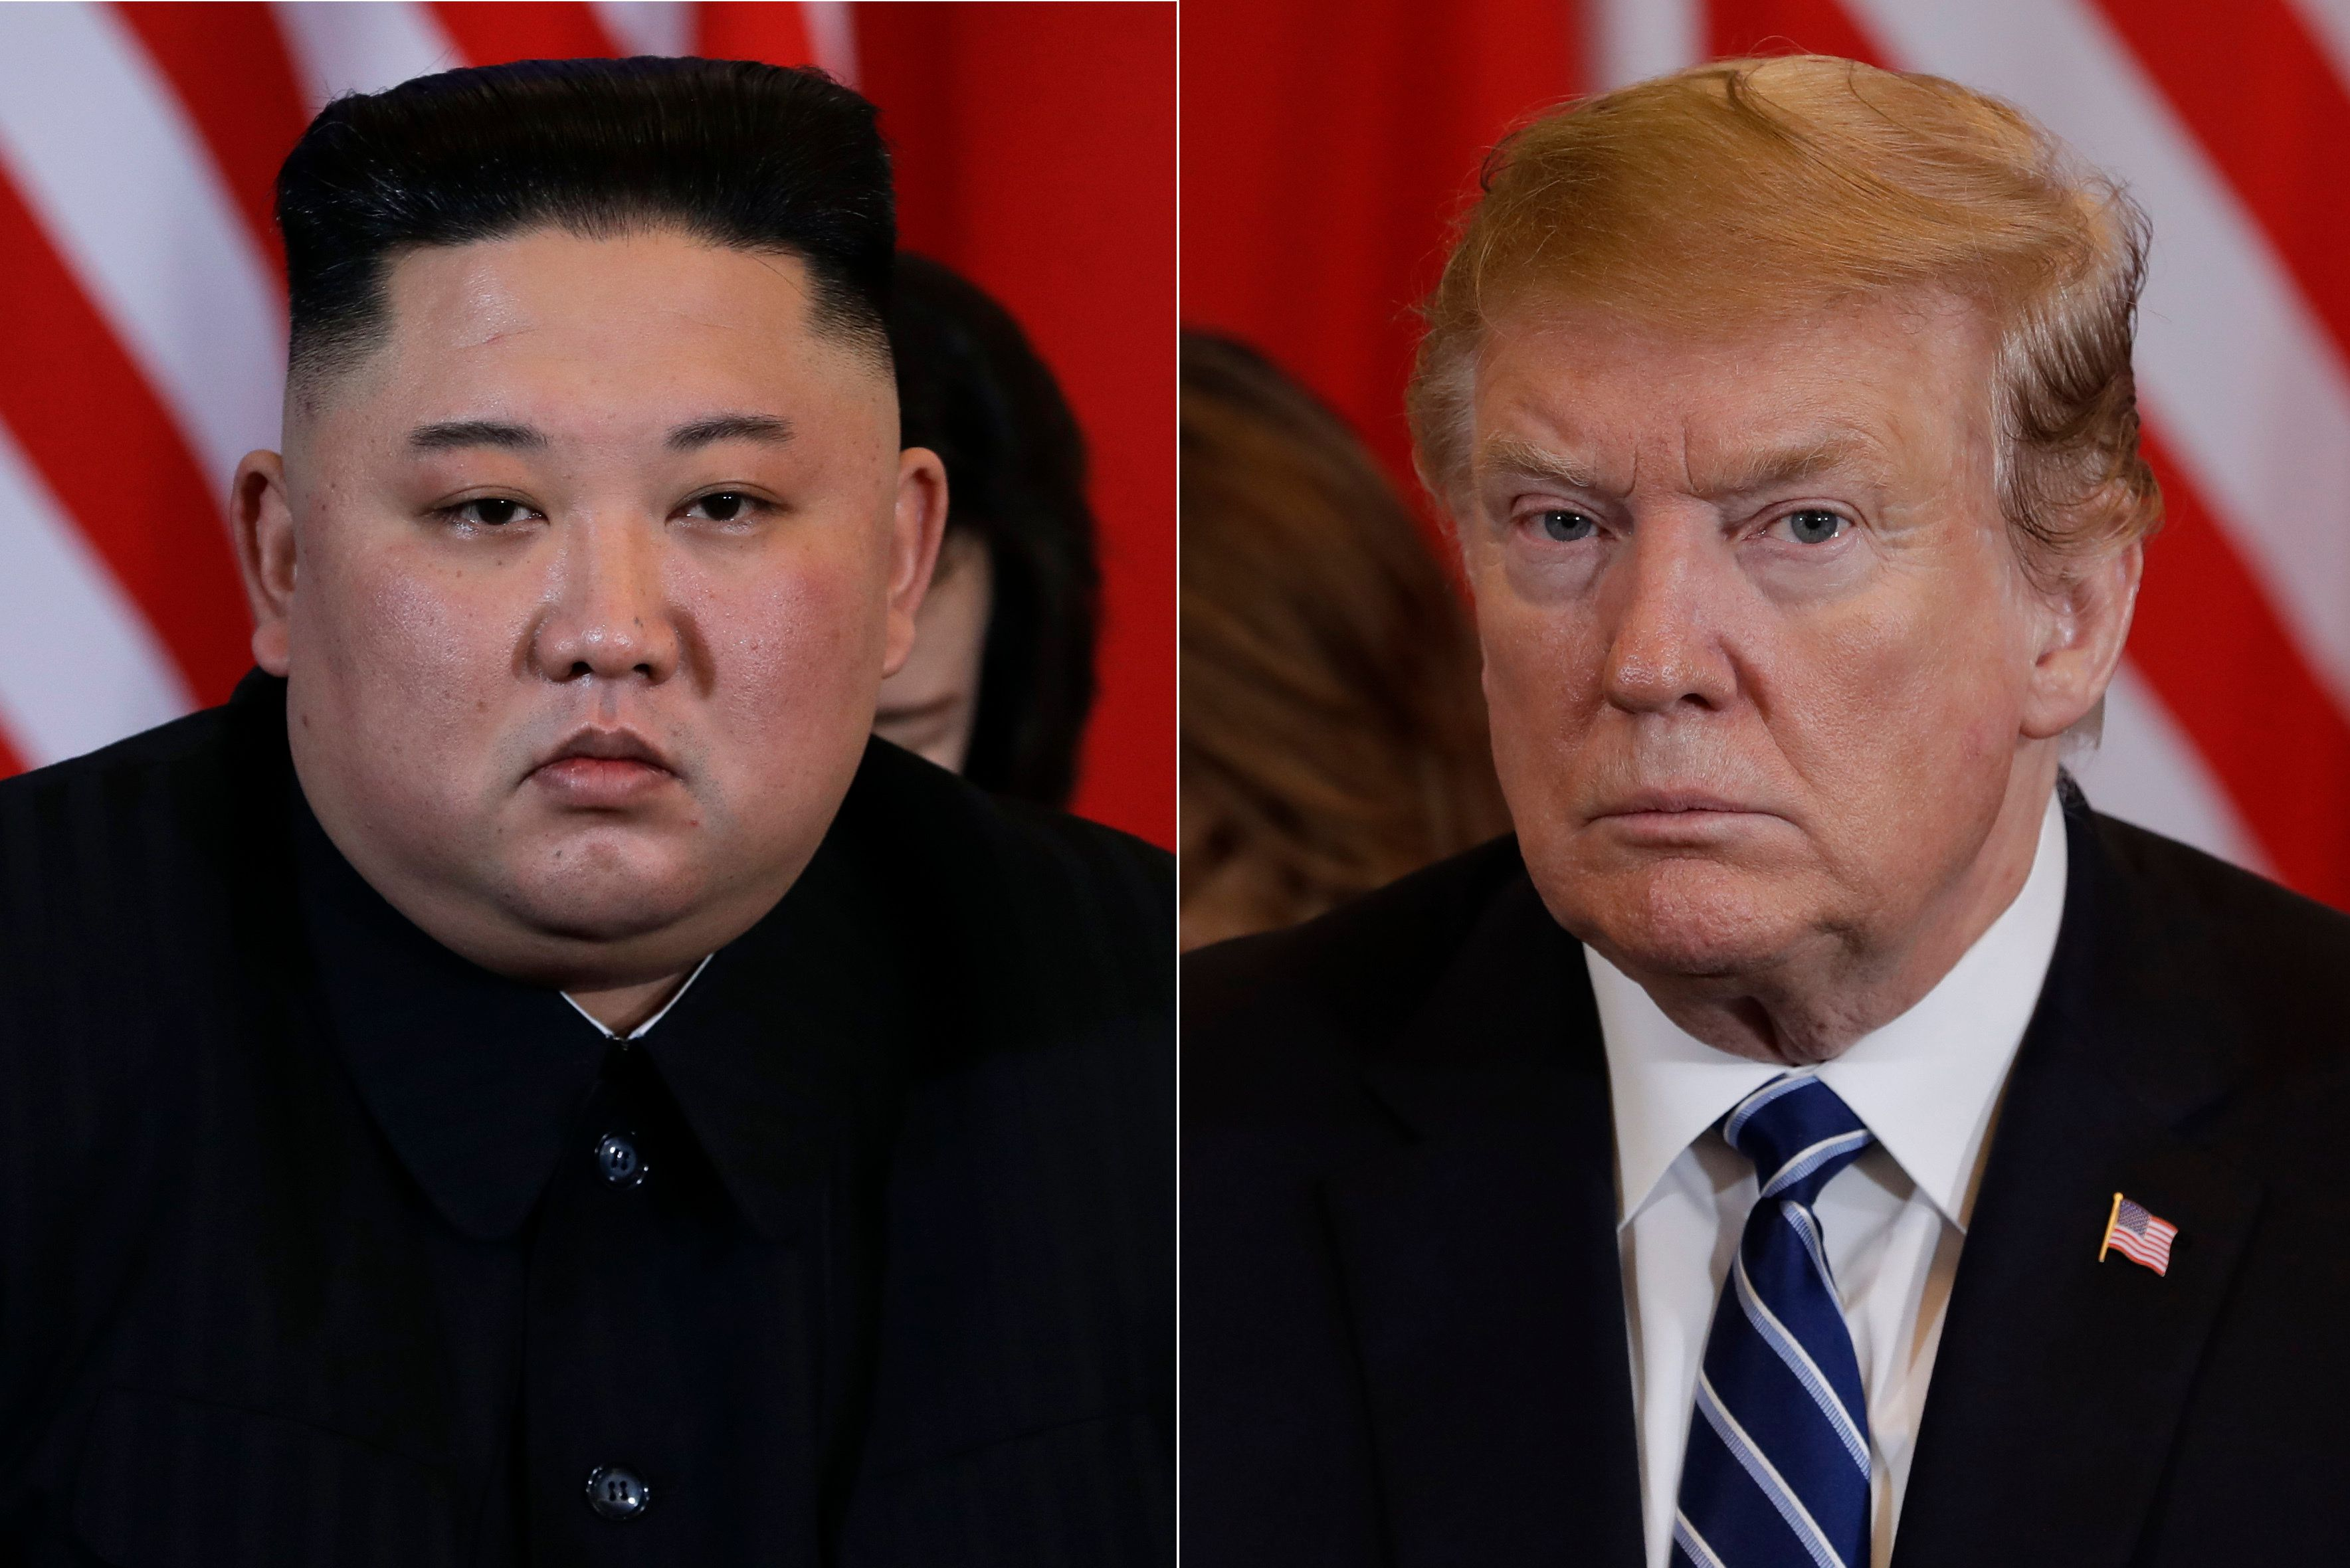 In this combination of images. North Korean leader Kim Jong Un, left, and President Donald Trump during their meeting Thursday, Feb. 28, 2019, in Hanoi. (AP Photo/Evan Vucci)